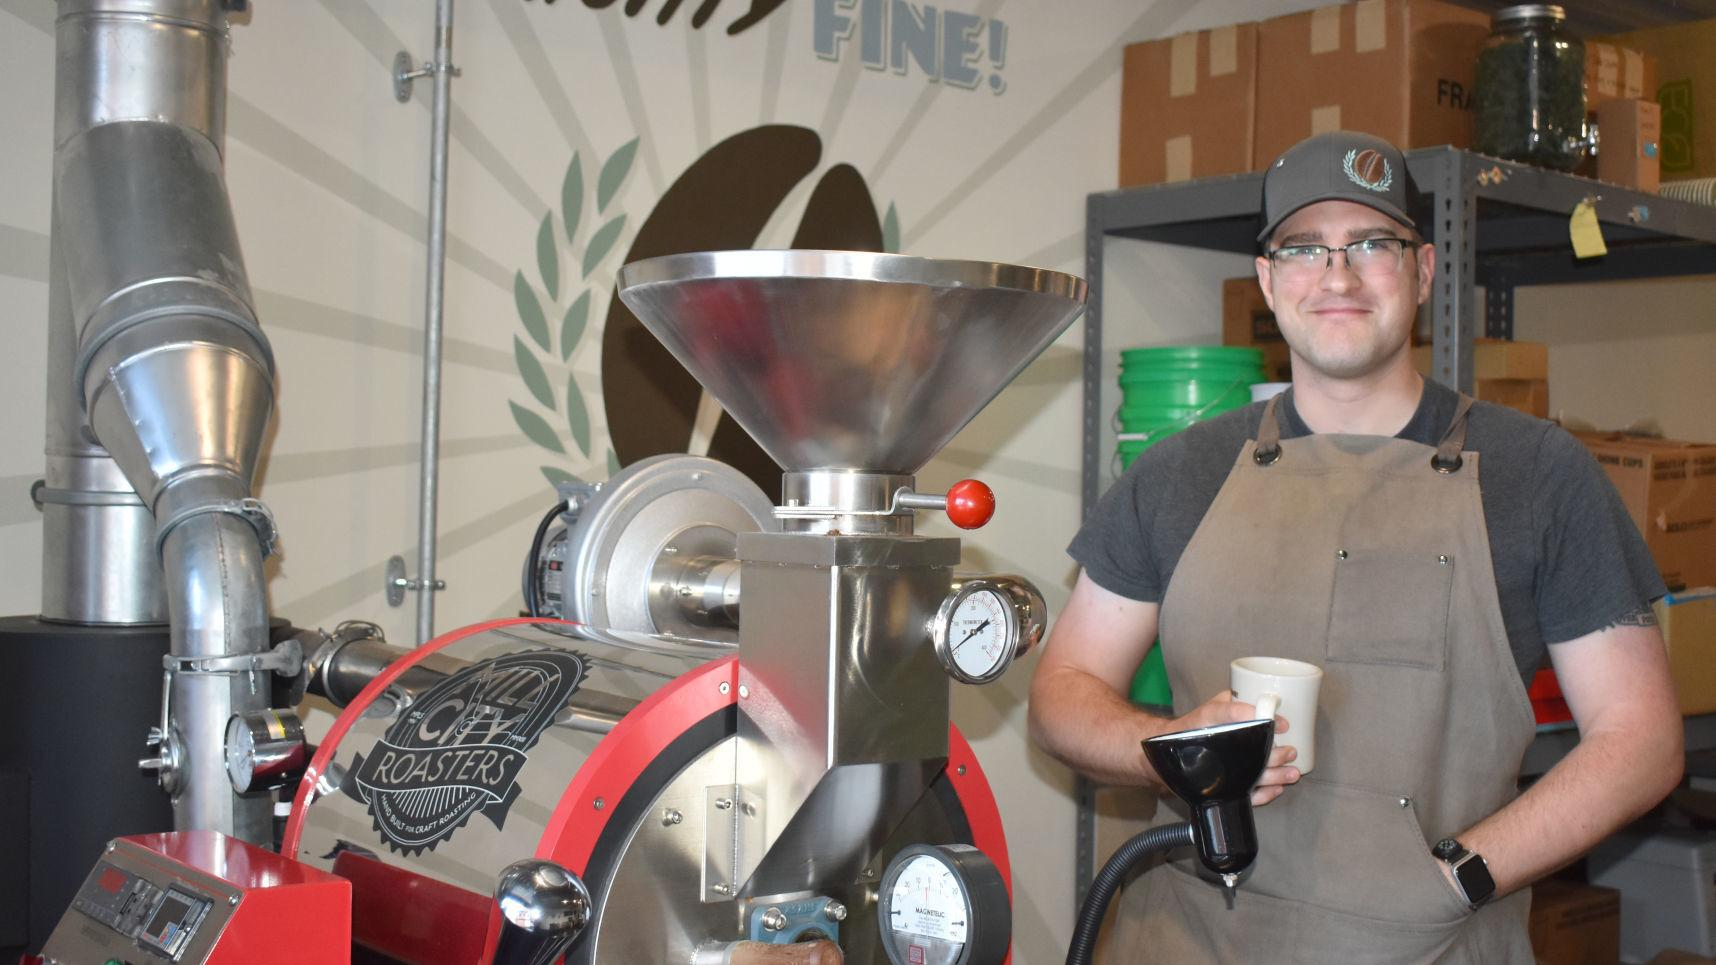 Faribault coffee roastery gives 'mighty fine' new flavor to community